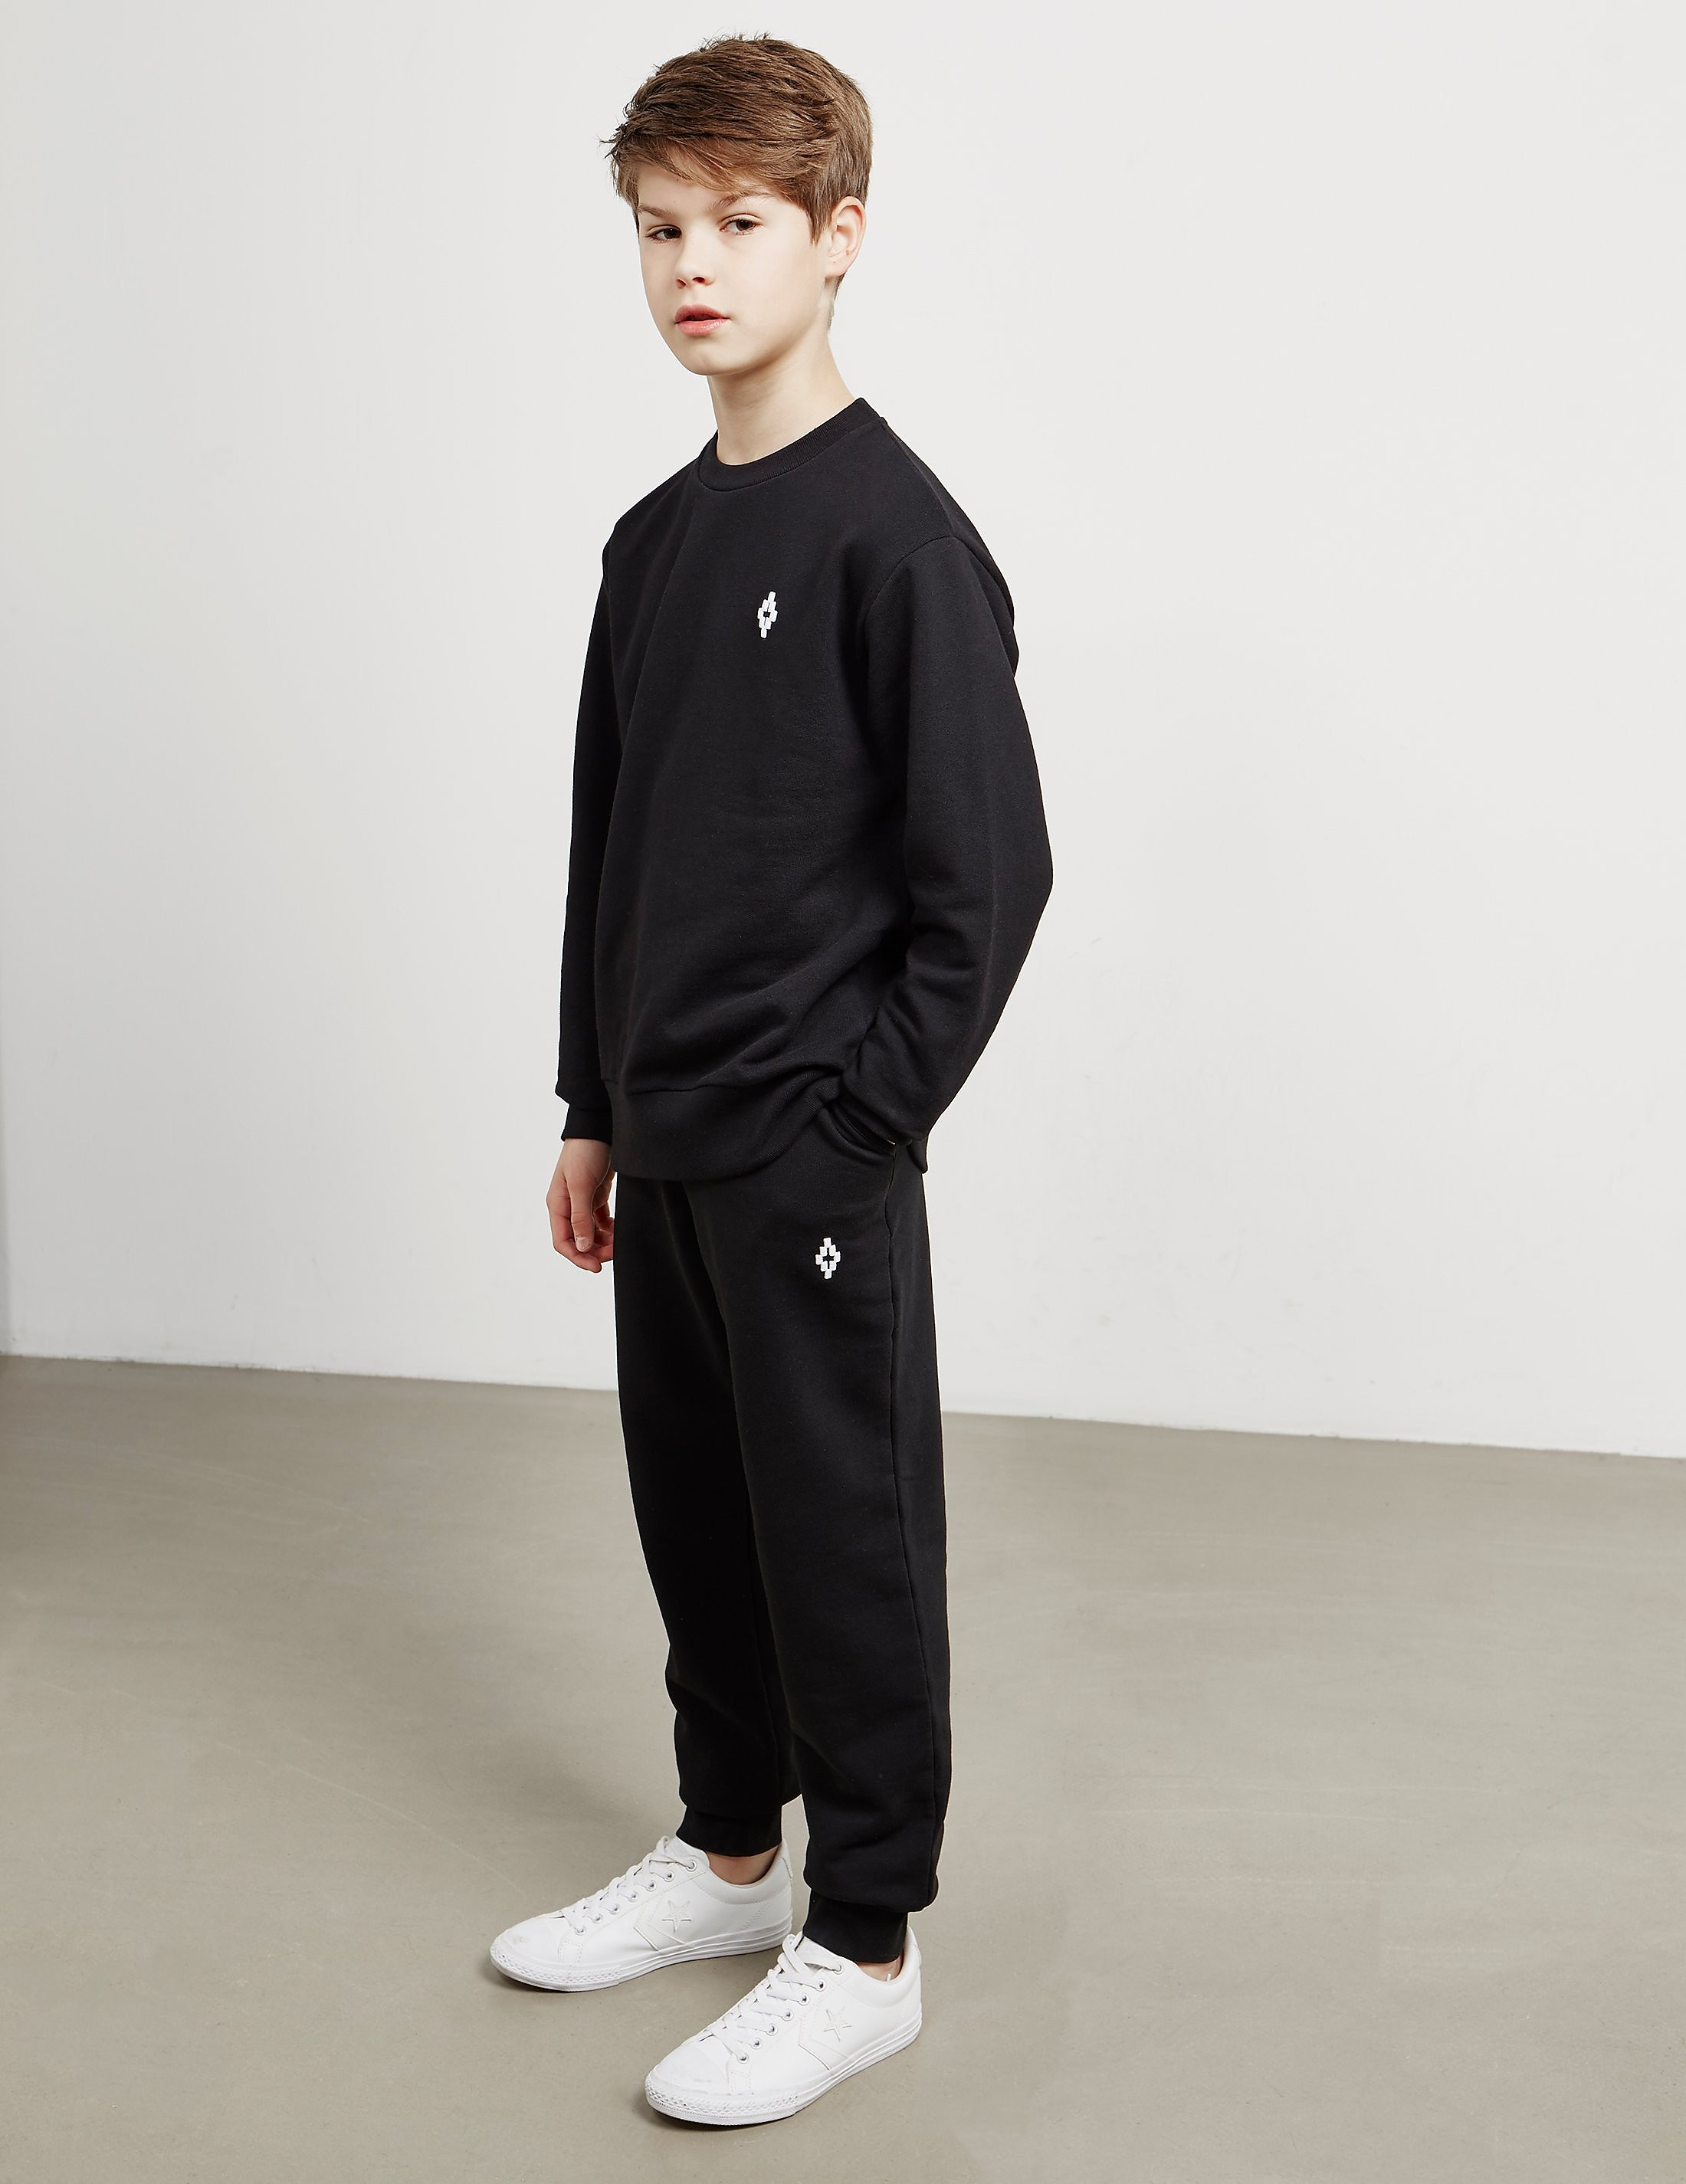 Marcelo Burlon Basic Sweatshirt